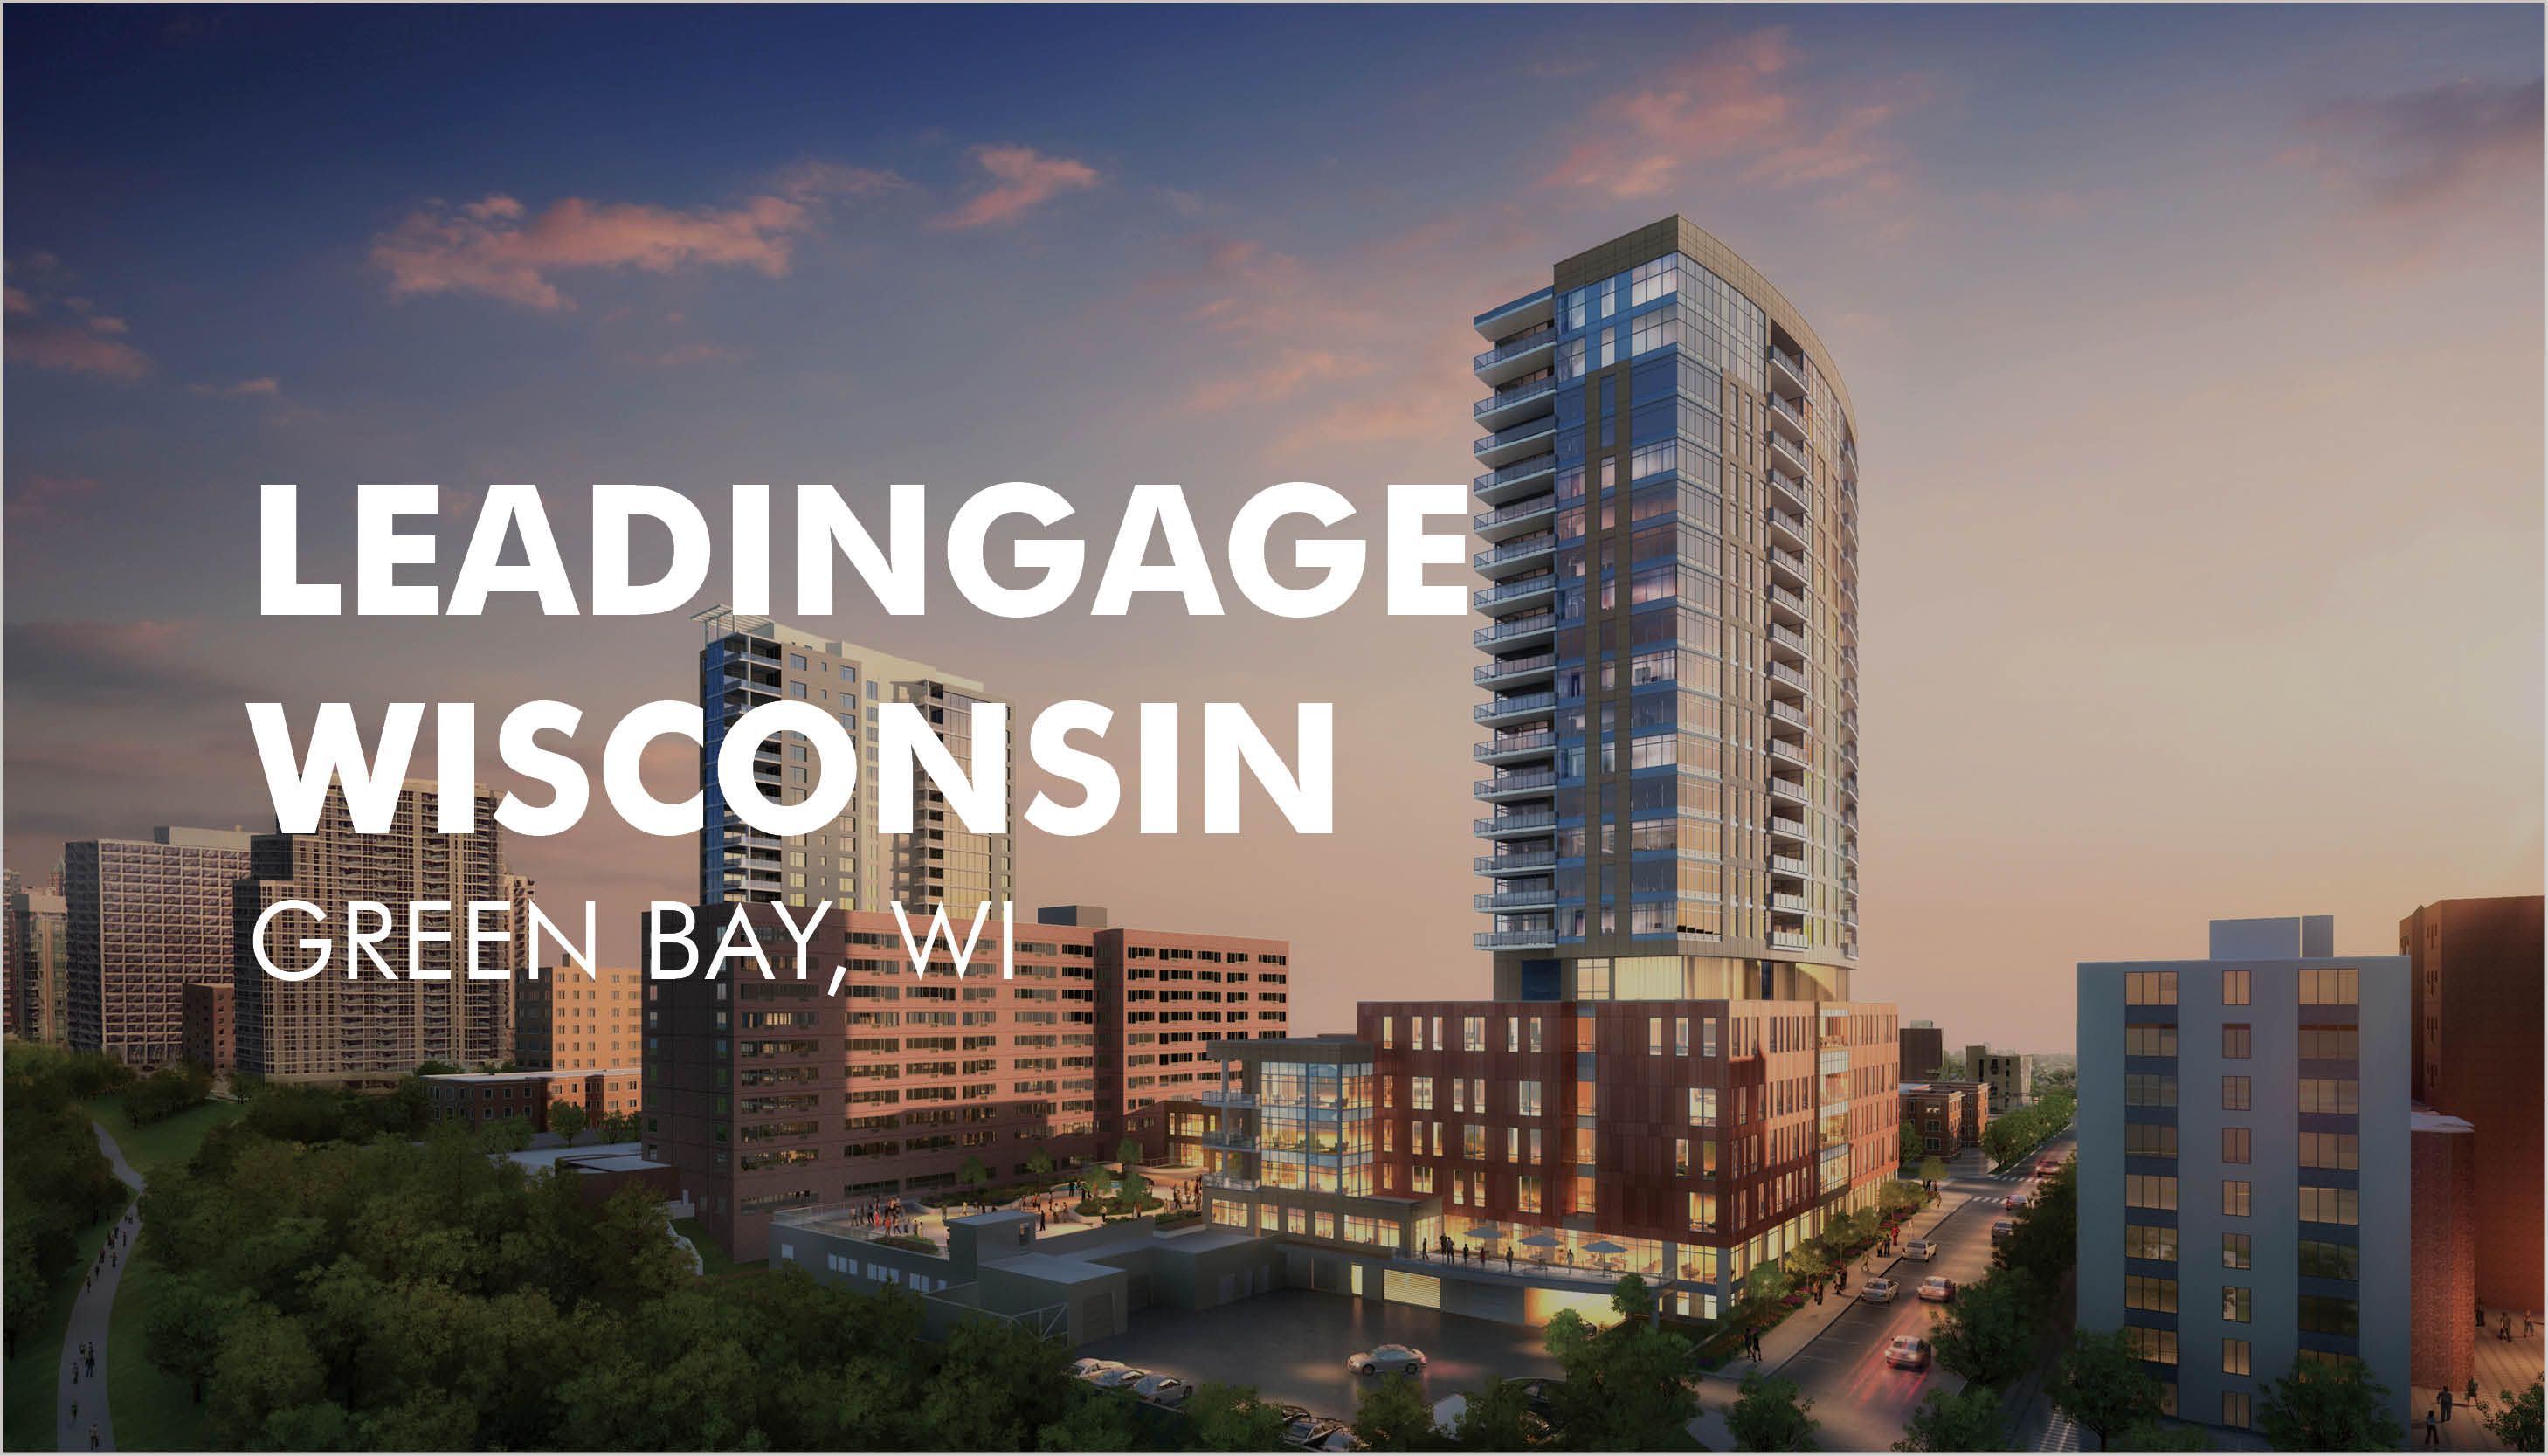 LeadingAge Wisconsin 2019 Fall Conference Image